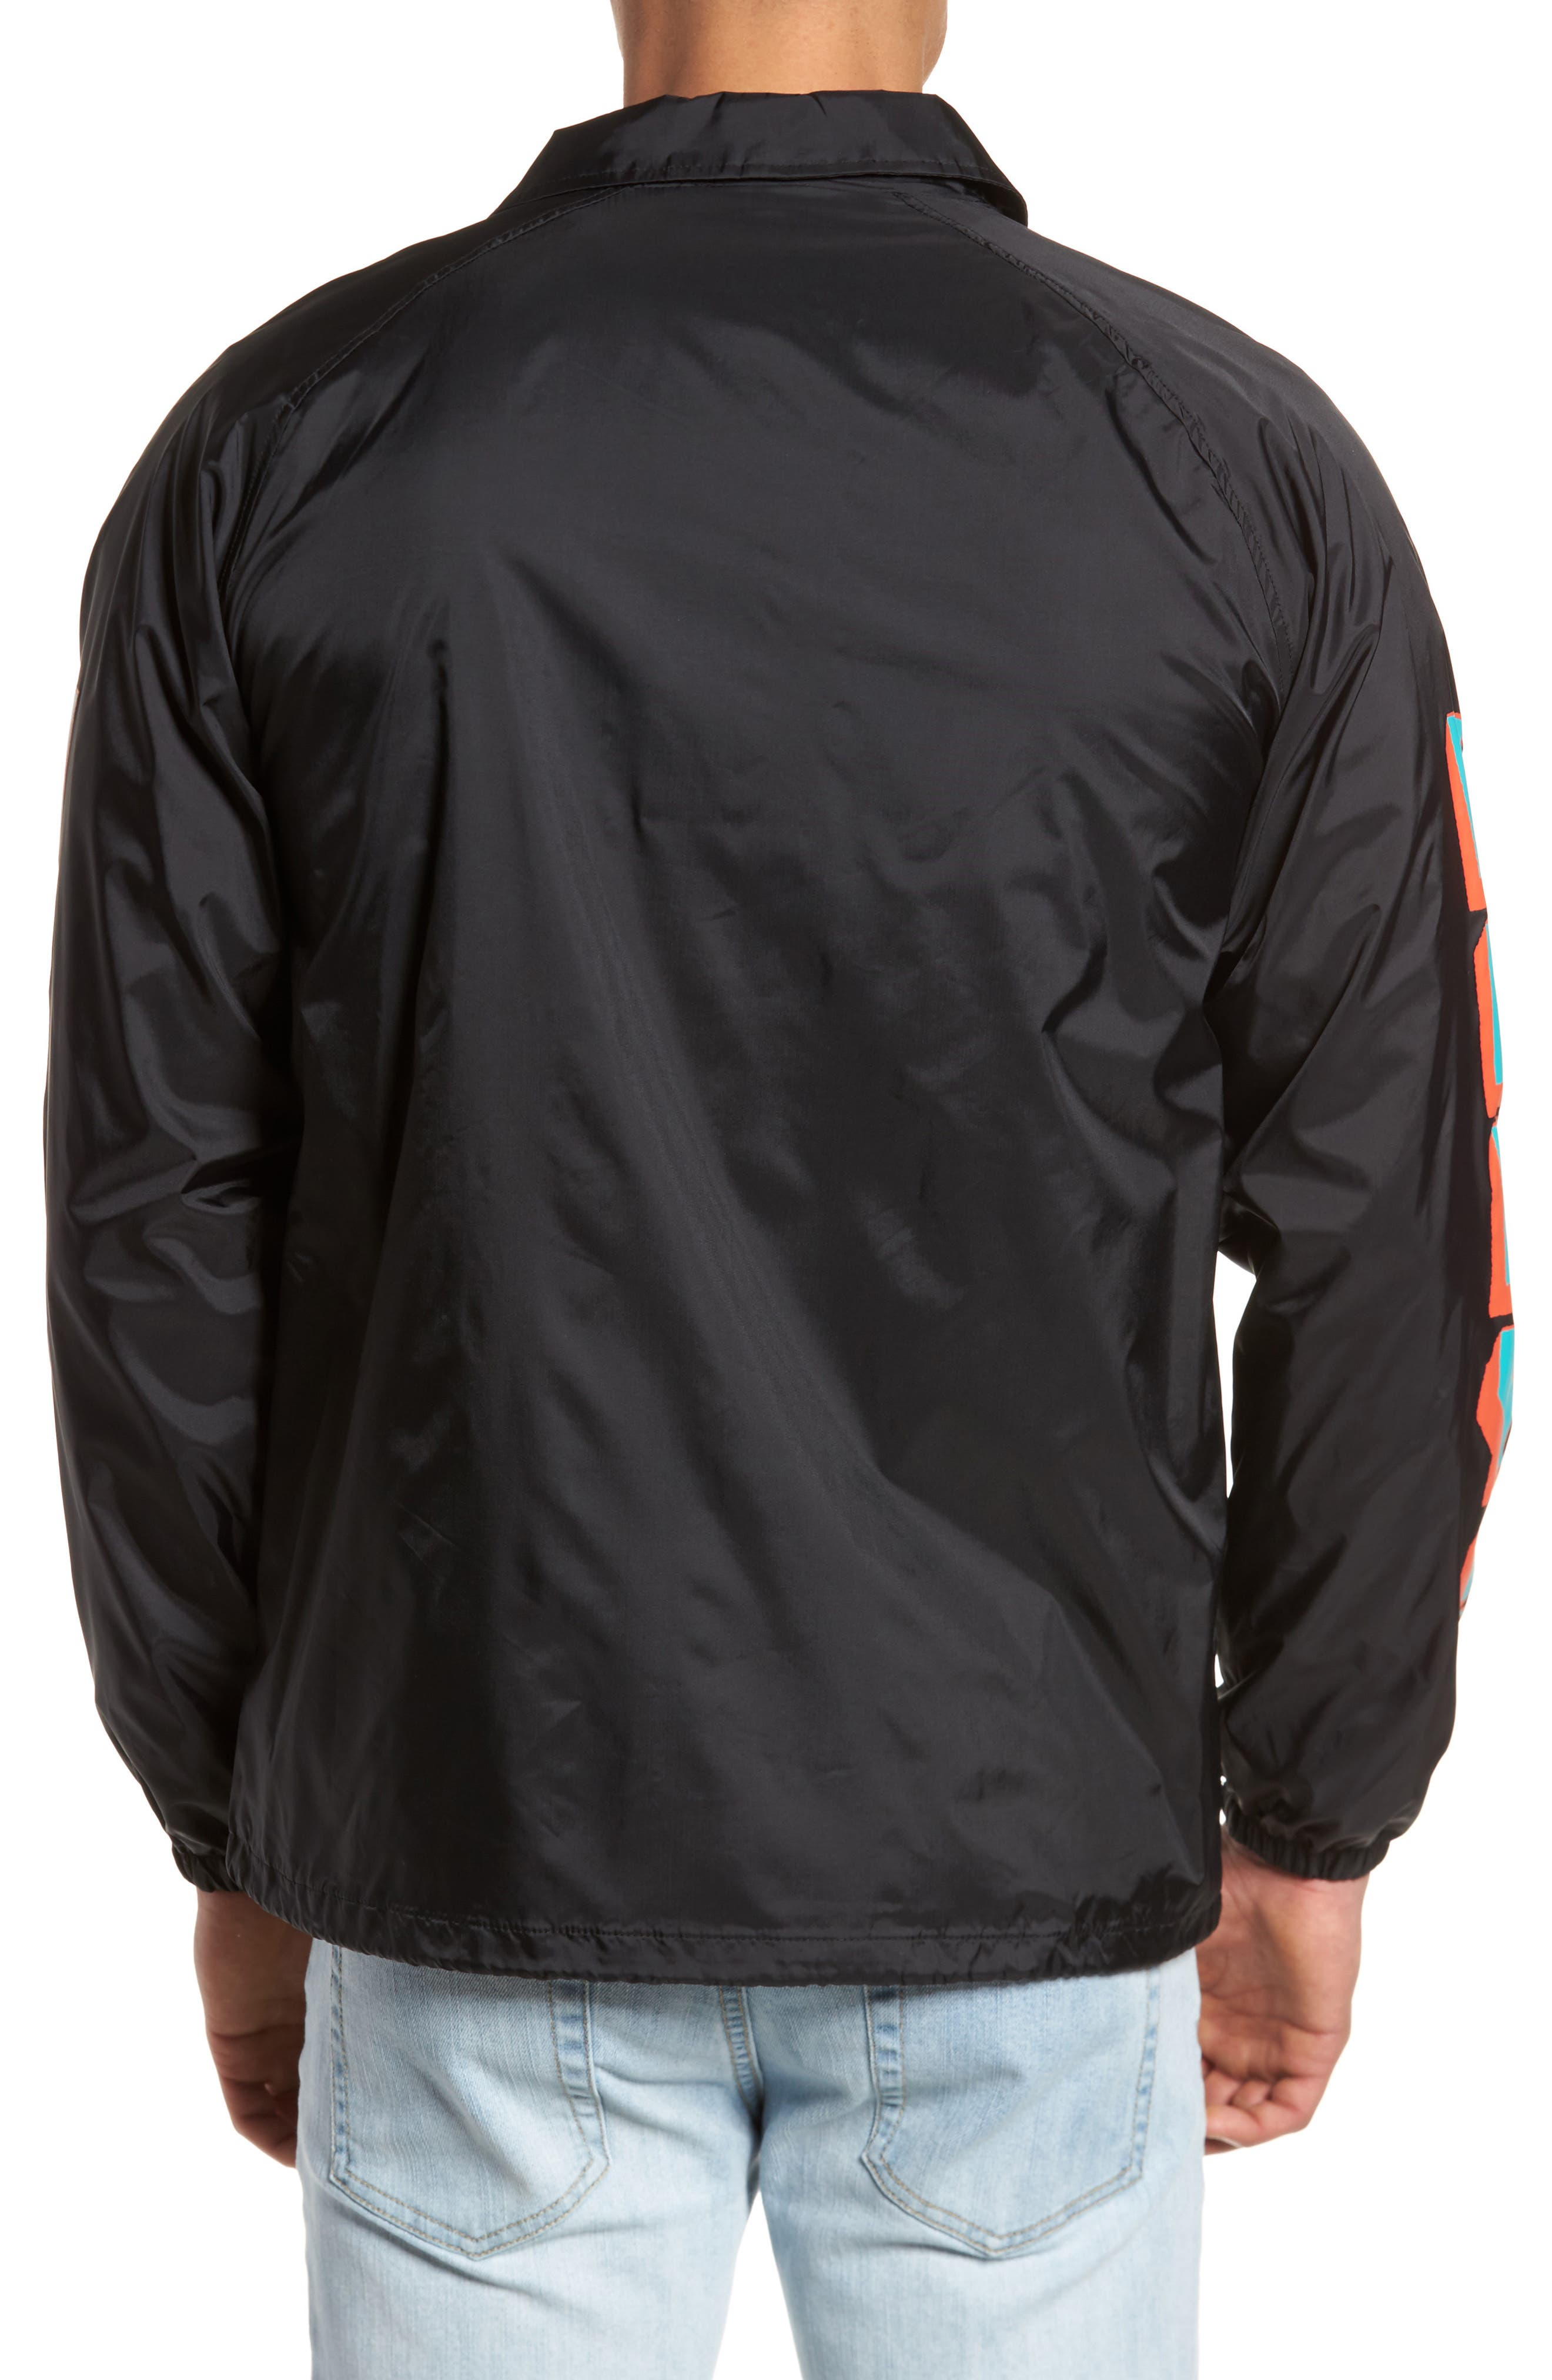 New World 2 Coach's Jacket,                             Alternate thumbnail 2, color,                             001